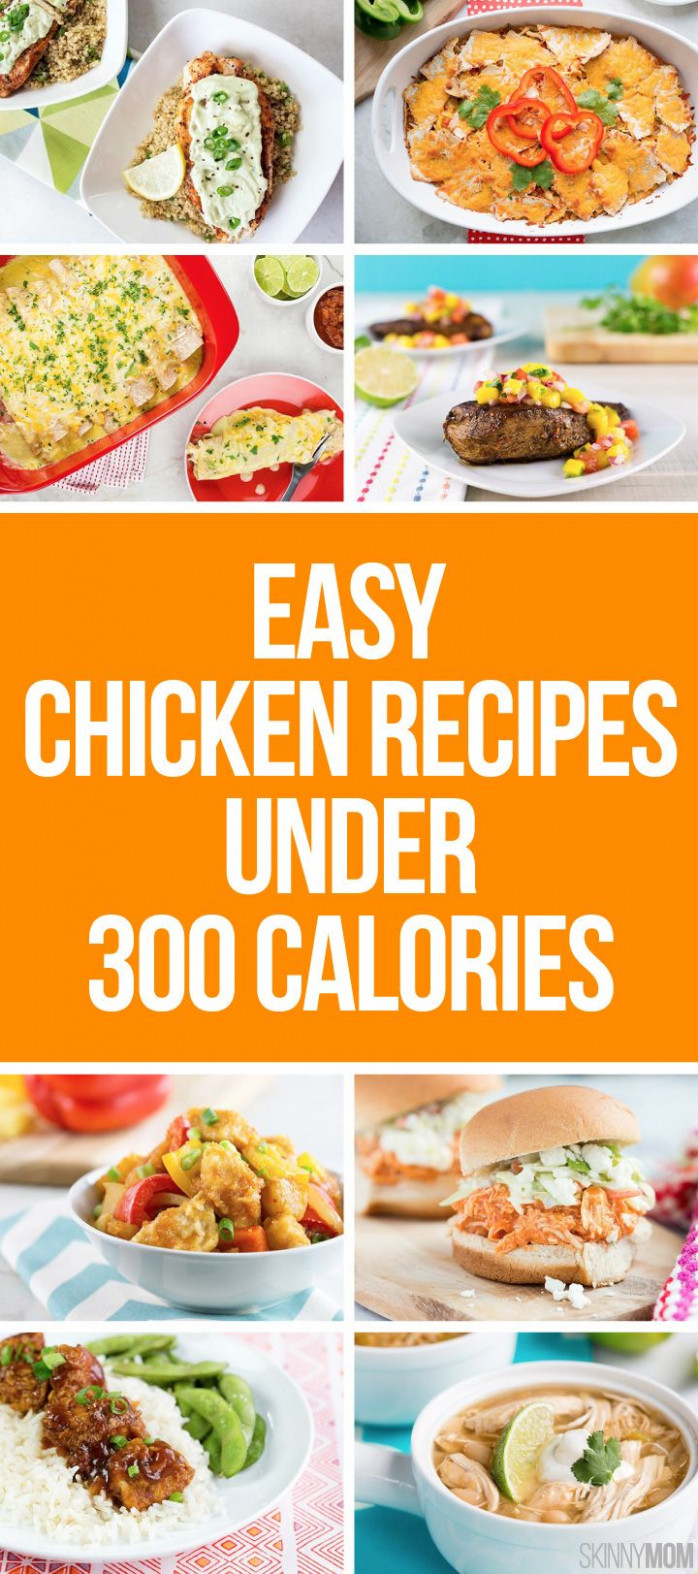 Diet Plans To Weight Loss: Low-Calorie Chicken Recipes You ..